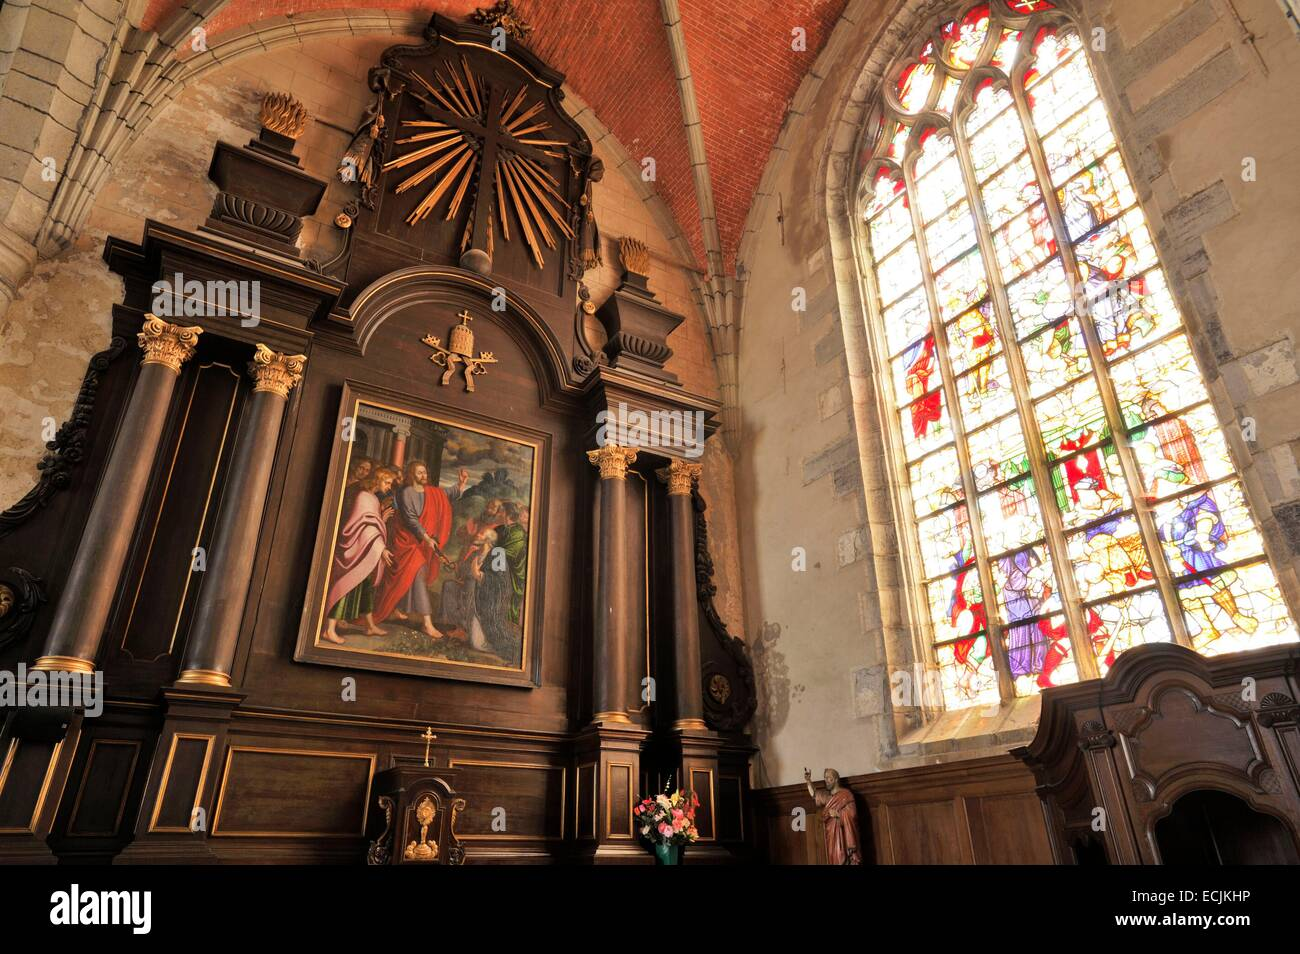 France, Nord, Solre le Chateau, Saint Pierre Saint Paul's church windows - Stock Image